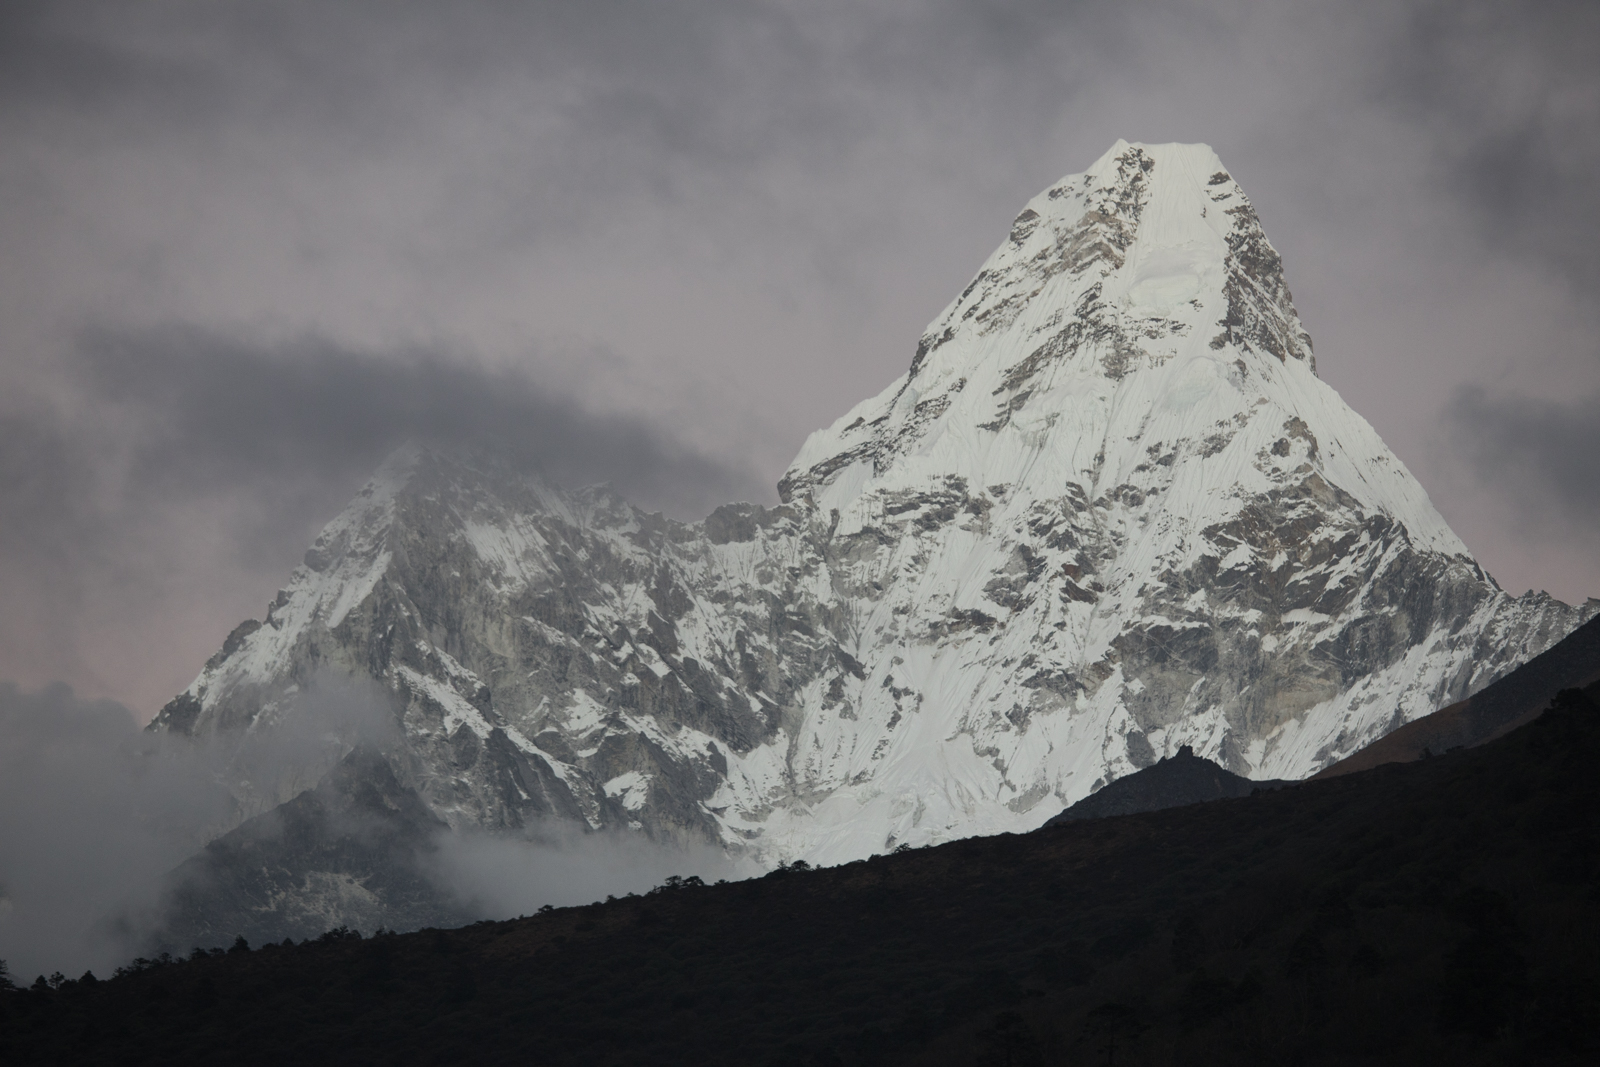 Ama Dablam. Ama Dablam 6,856 m / 22,493 ft. (Elevation credit: PeakFinder)